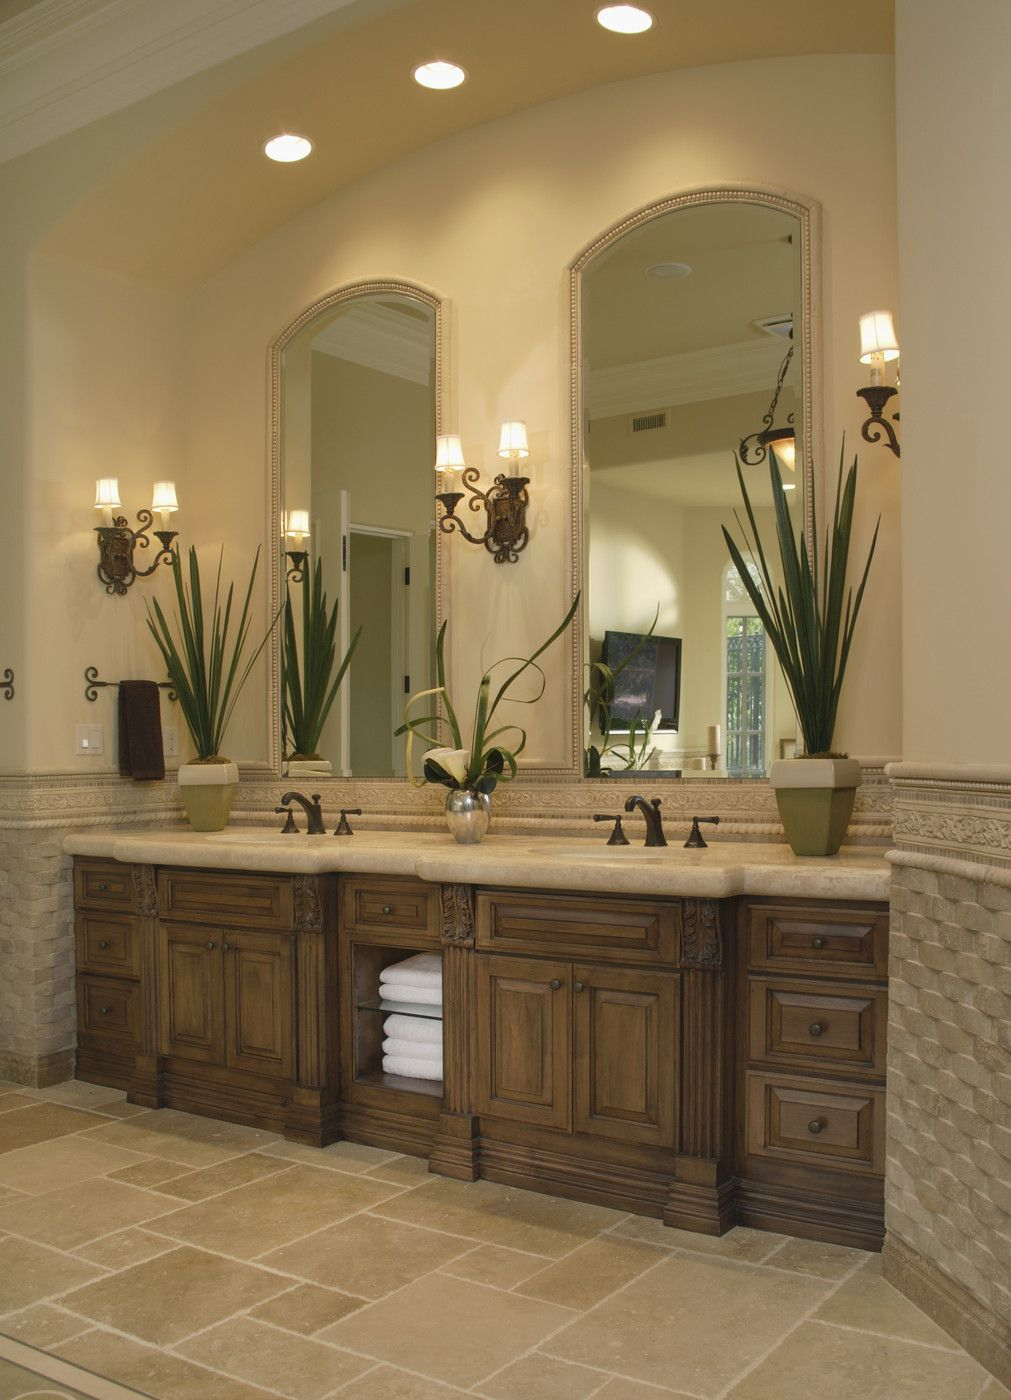 Bathroom Vanity Lights Pictures rise and shine! bathroom vanity lighting tips